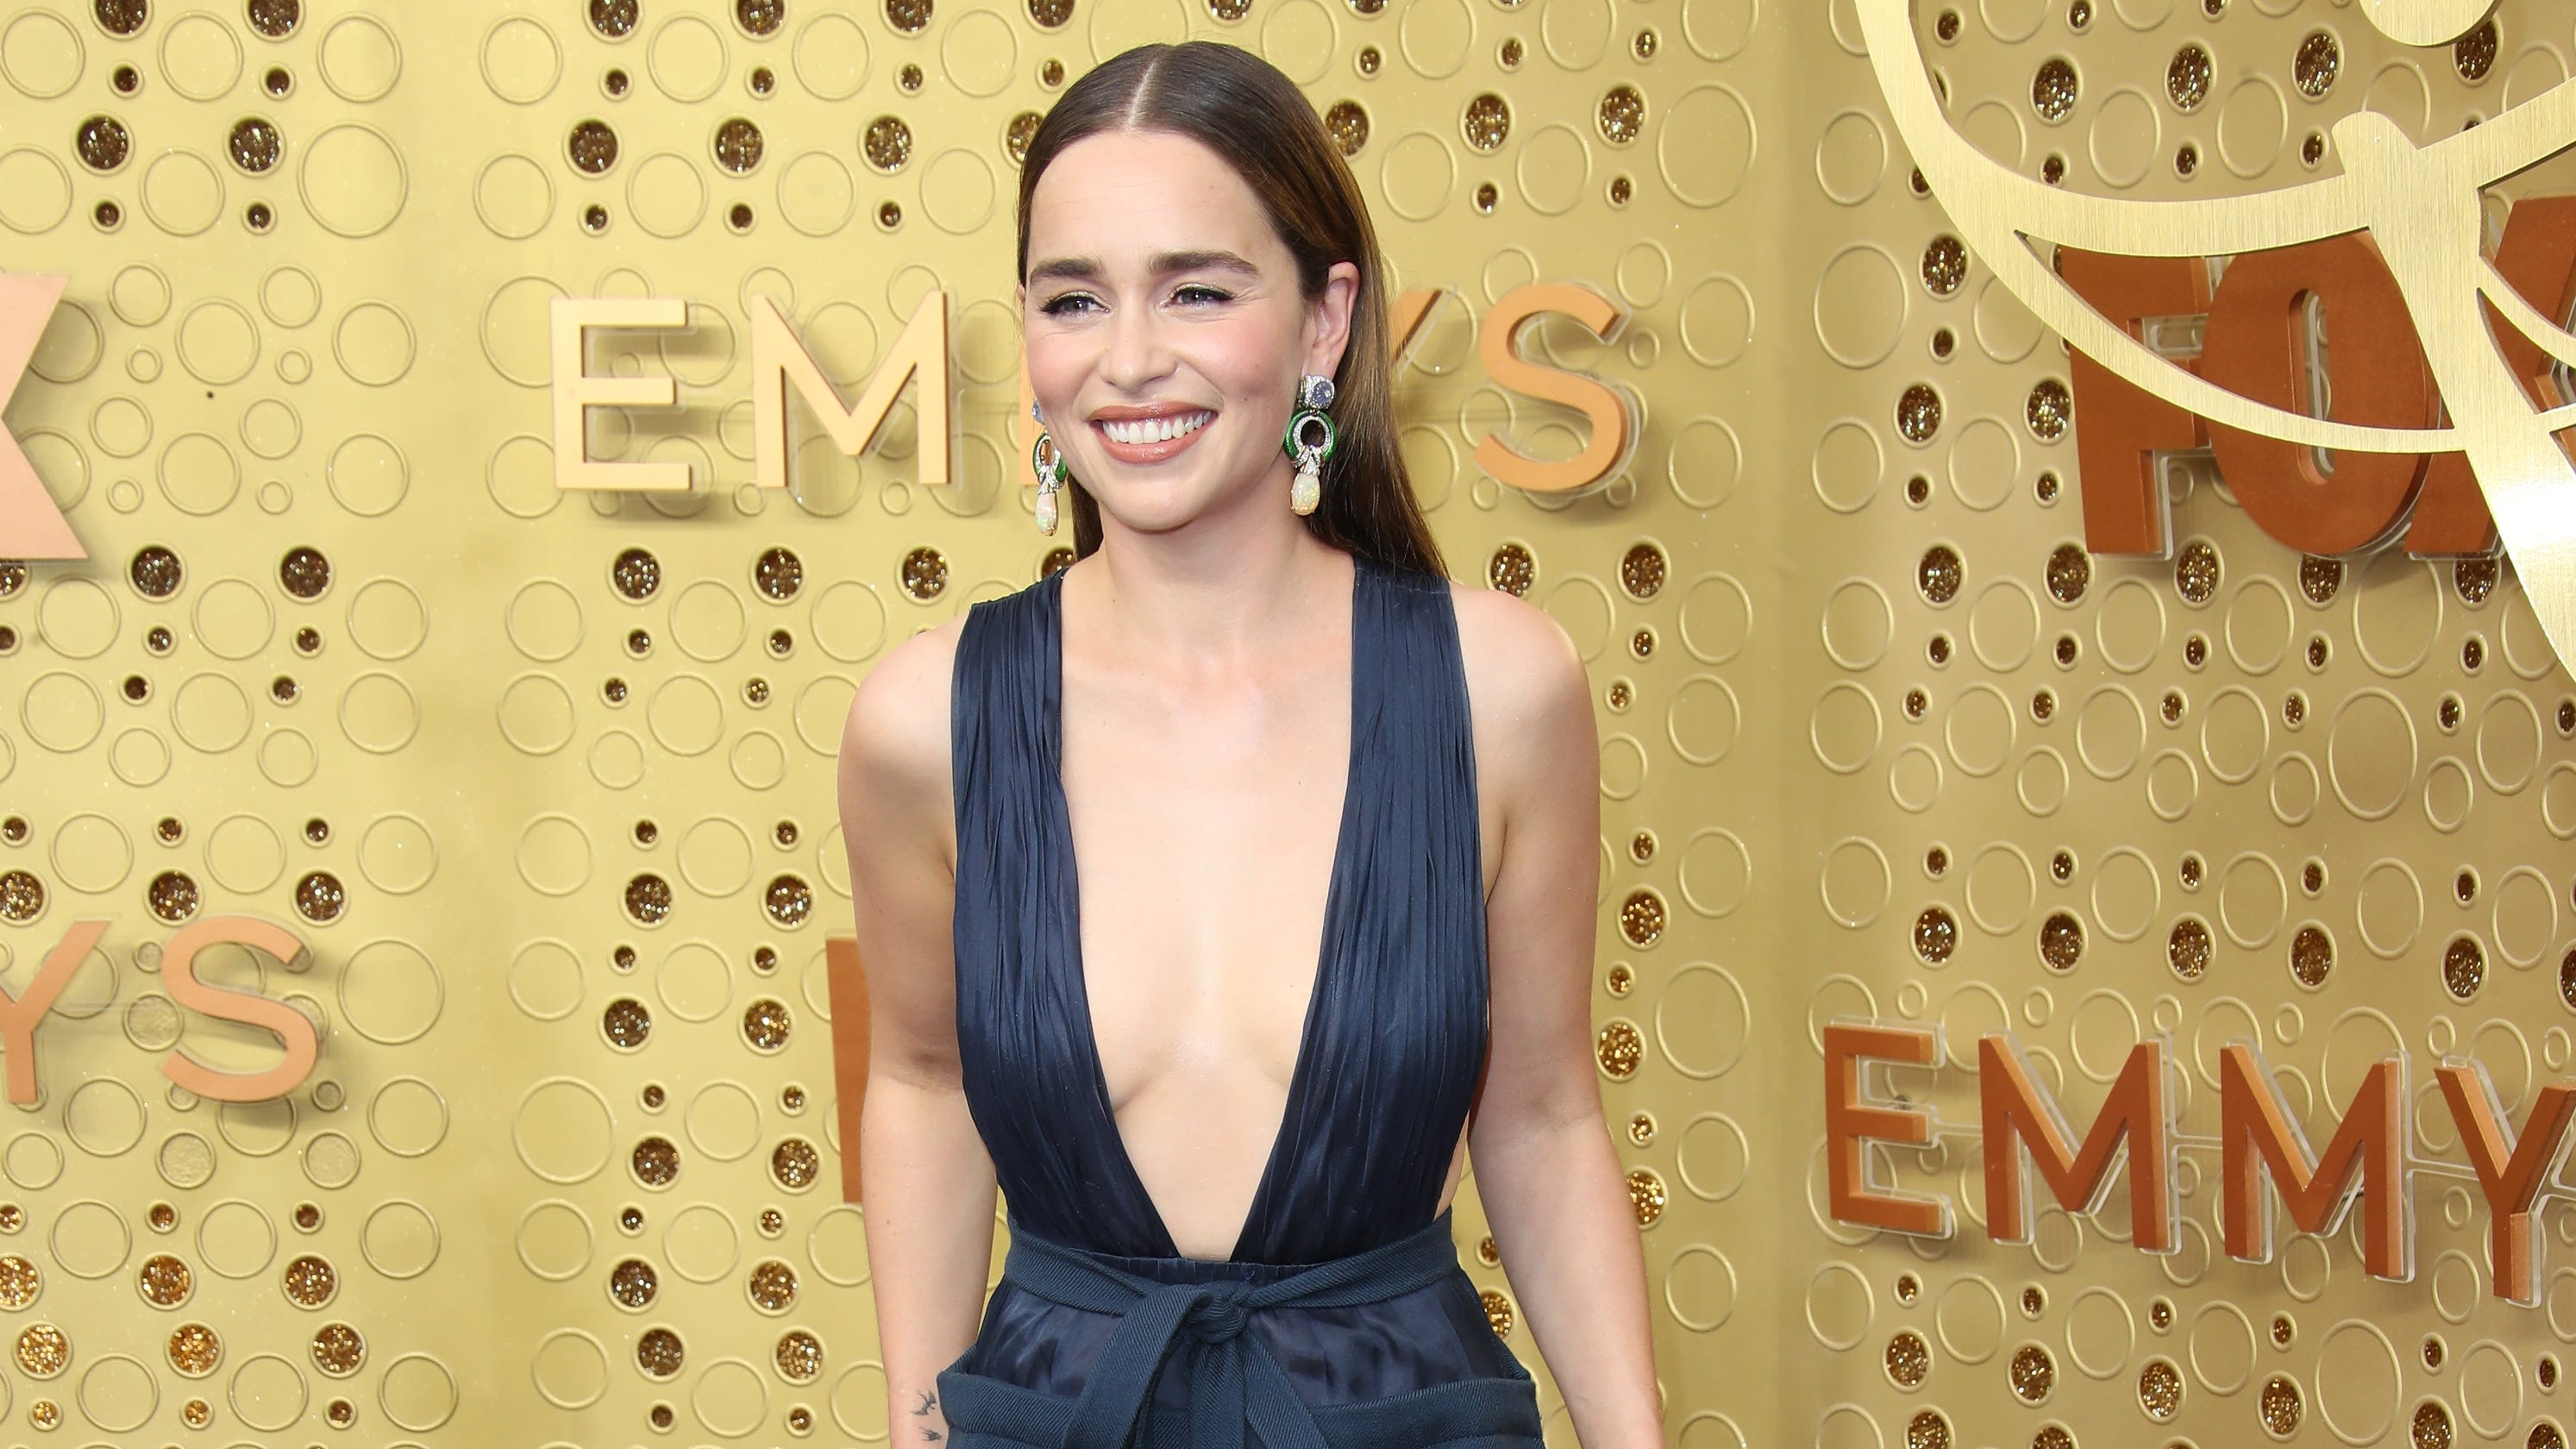 Best dressed at the Emmys: Emilia Clarke, Regina King were flawless